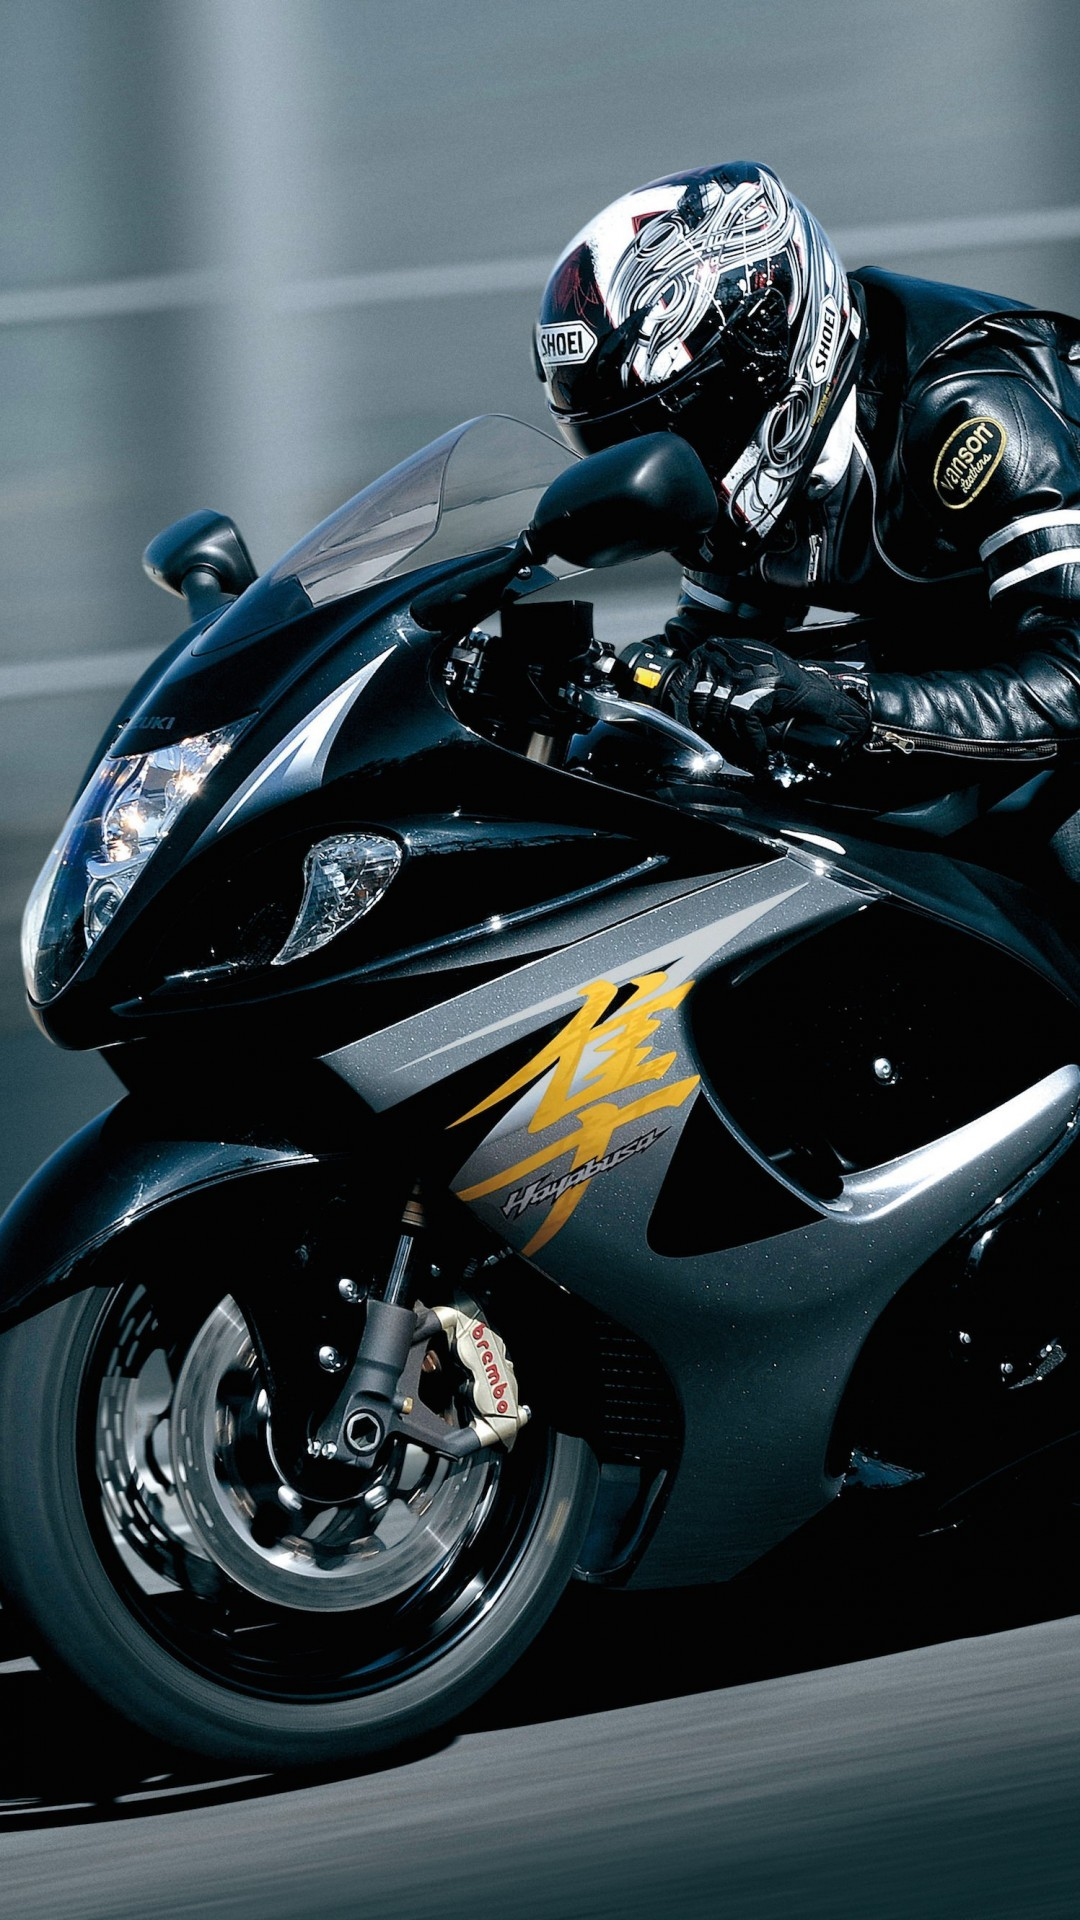 Suzuki Hayabusa GSX 1300R Wallpaper for HTC One